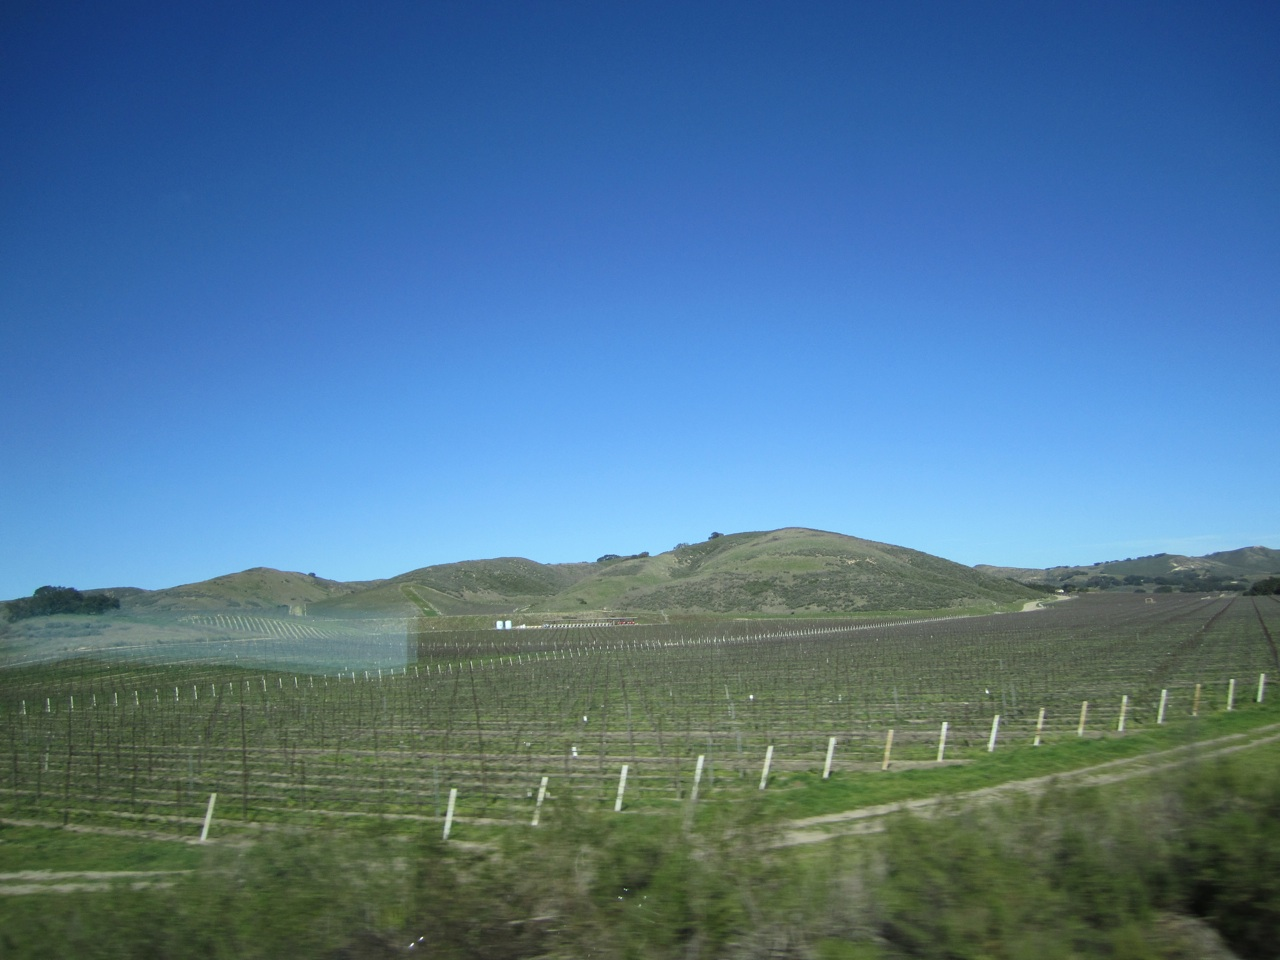 Rows And Rows Of Vines For The Wineries